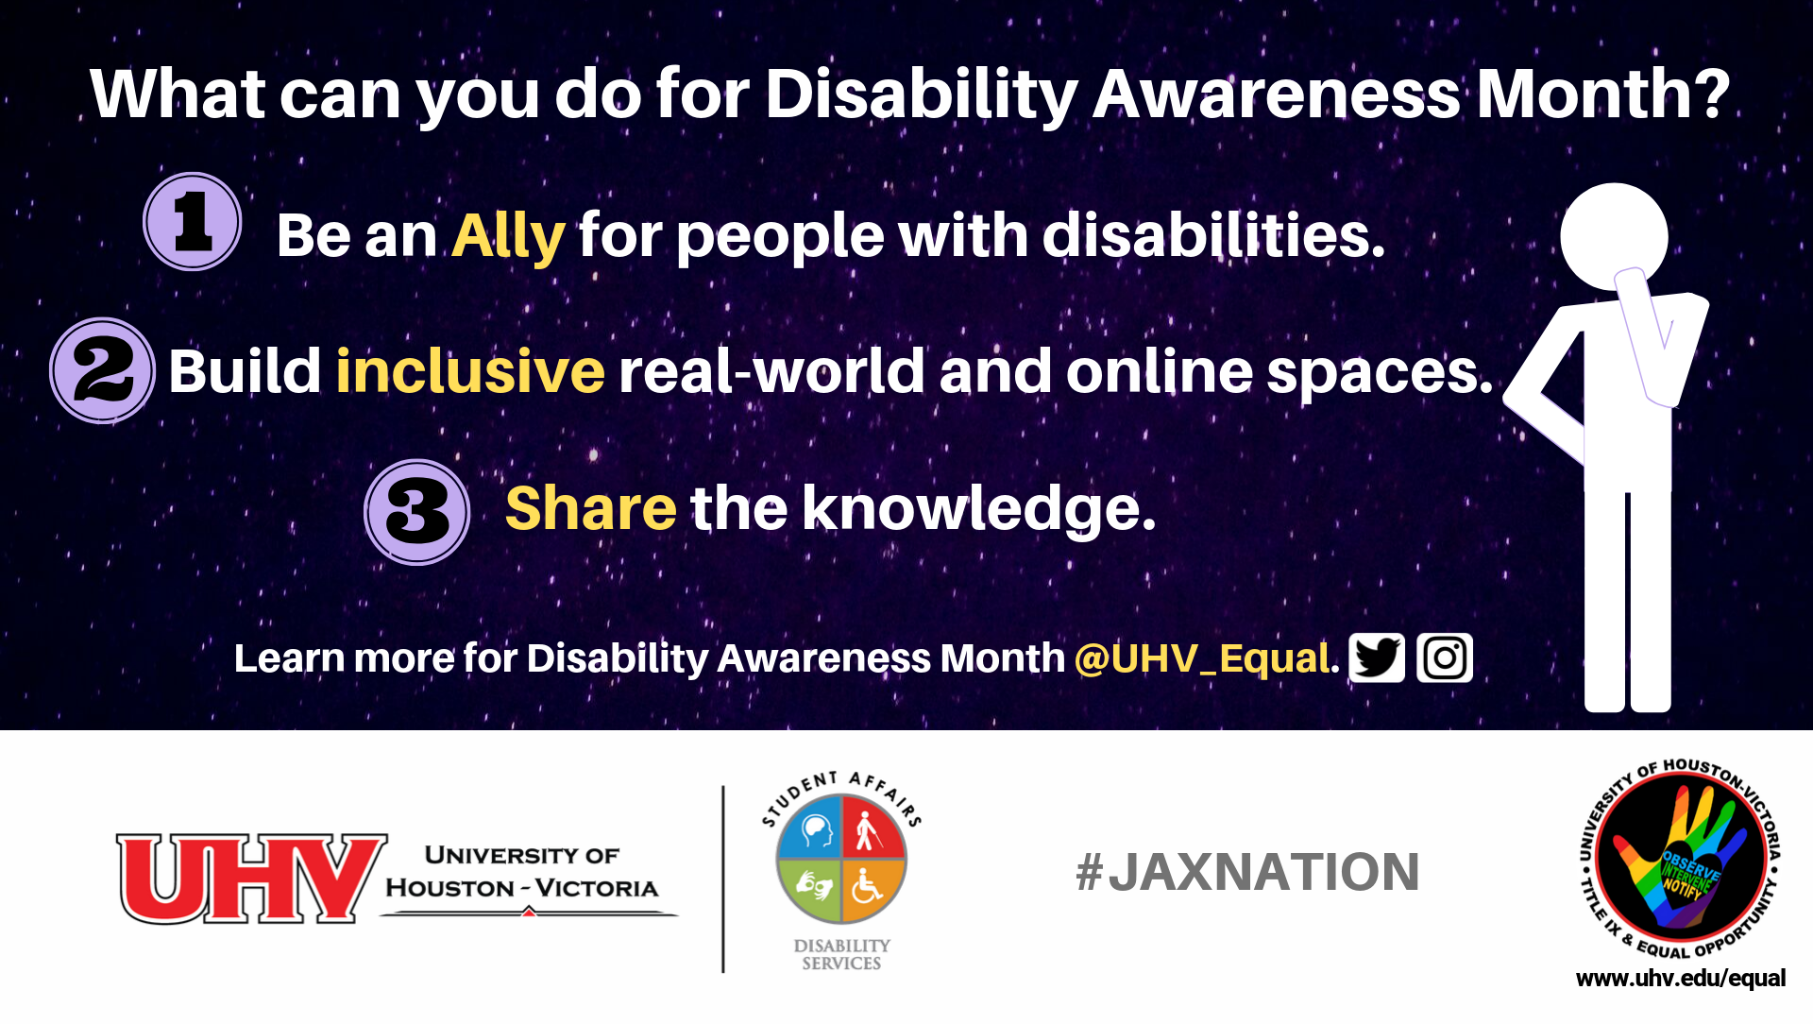 What can you do for Disability Awareness Month? 1. Be an Ally for people with disabilities. 2. Build inclusive real-world and online spaces. 3. Share the knowledge. Figurine with hand to chin image. UHV Disability Services Logo. Learn more for Disability Awareness Month @UHV_Equal.#jaxnation. University of Houston-Victoria Title IX and Equal Opportunity Logo (rainbow hand)